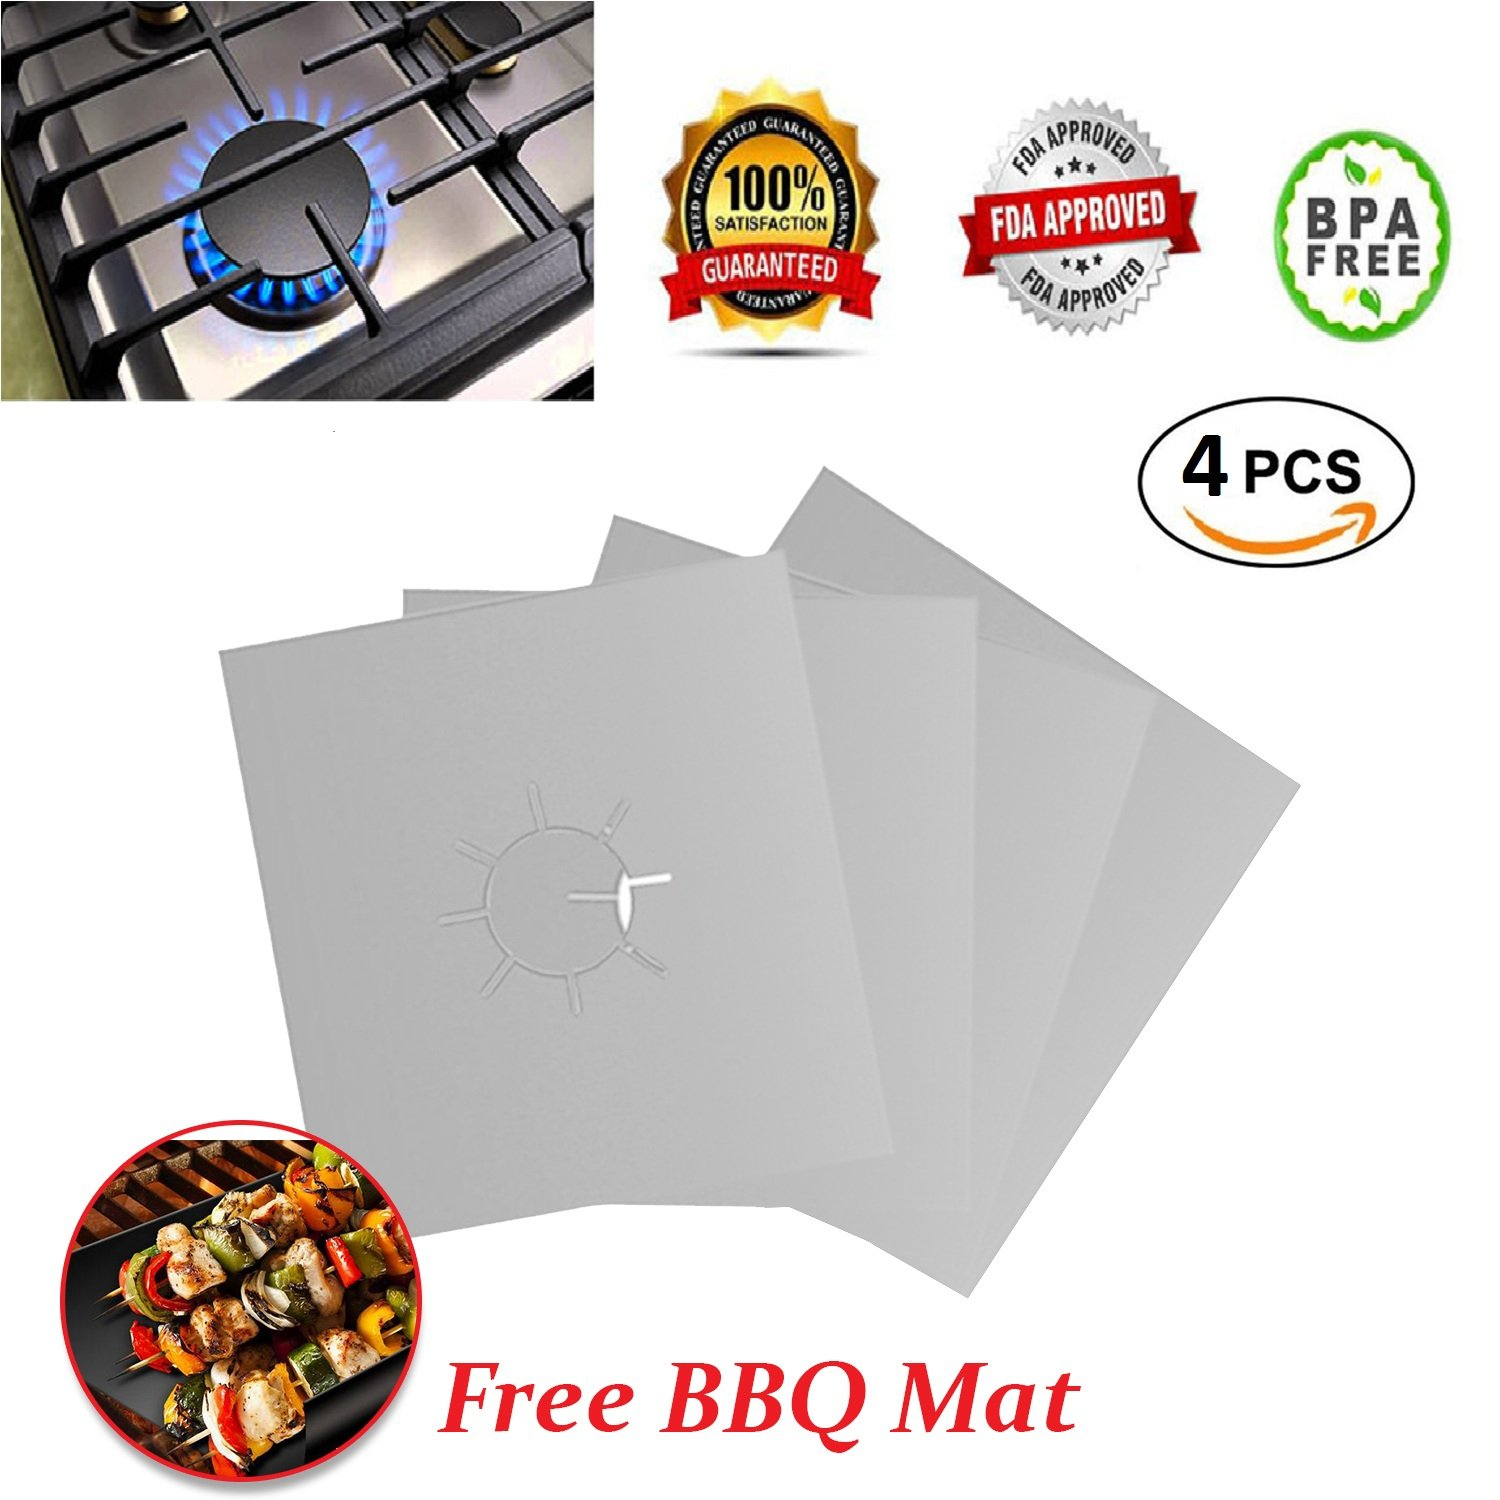 Gas Range Protectors, Reusable Stove Burner Covers, Gas Cook top Cover, Non Stick- Hob Stove top Liner Cover with 1 BBQ Mat - FREE - 10.6'' x 10.6'' -0.12 mm thick, FDA Approved (4 PACK -Silver) by Cookeezy